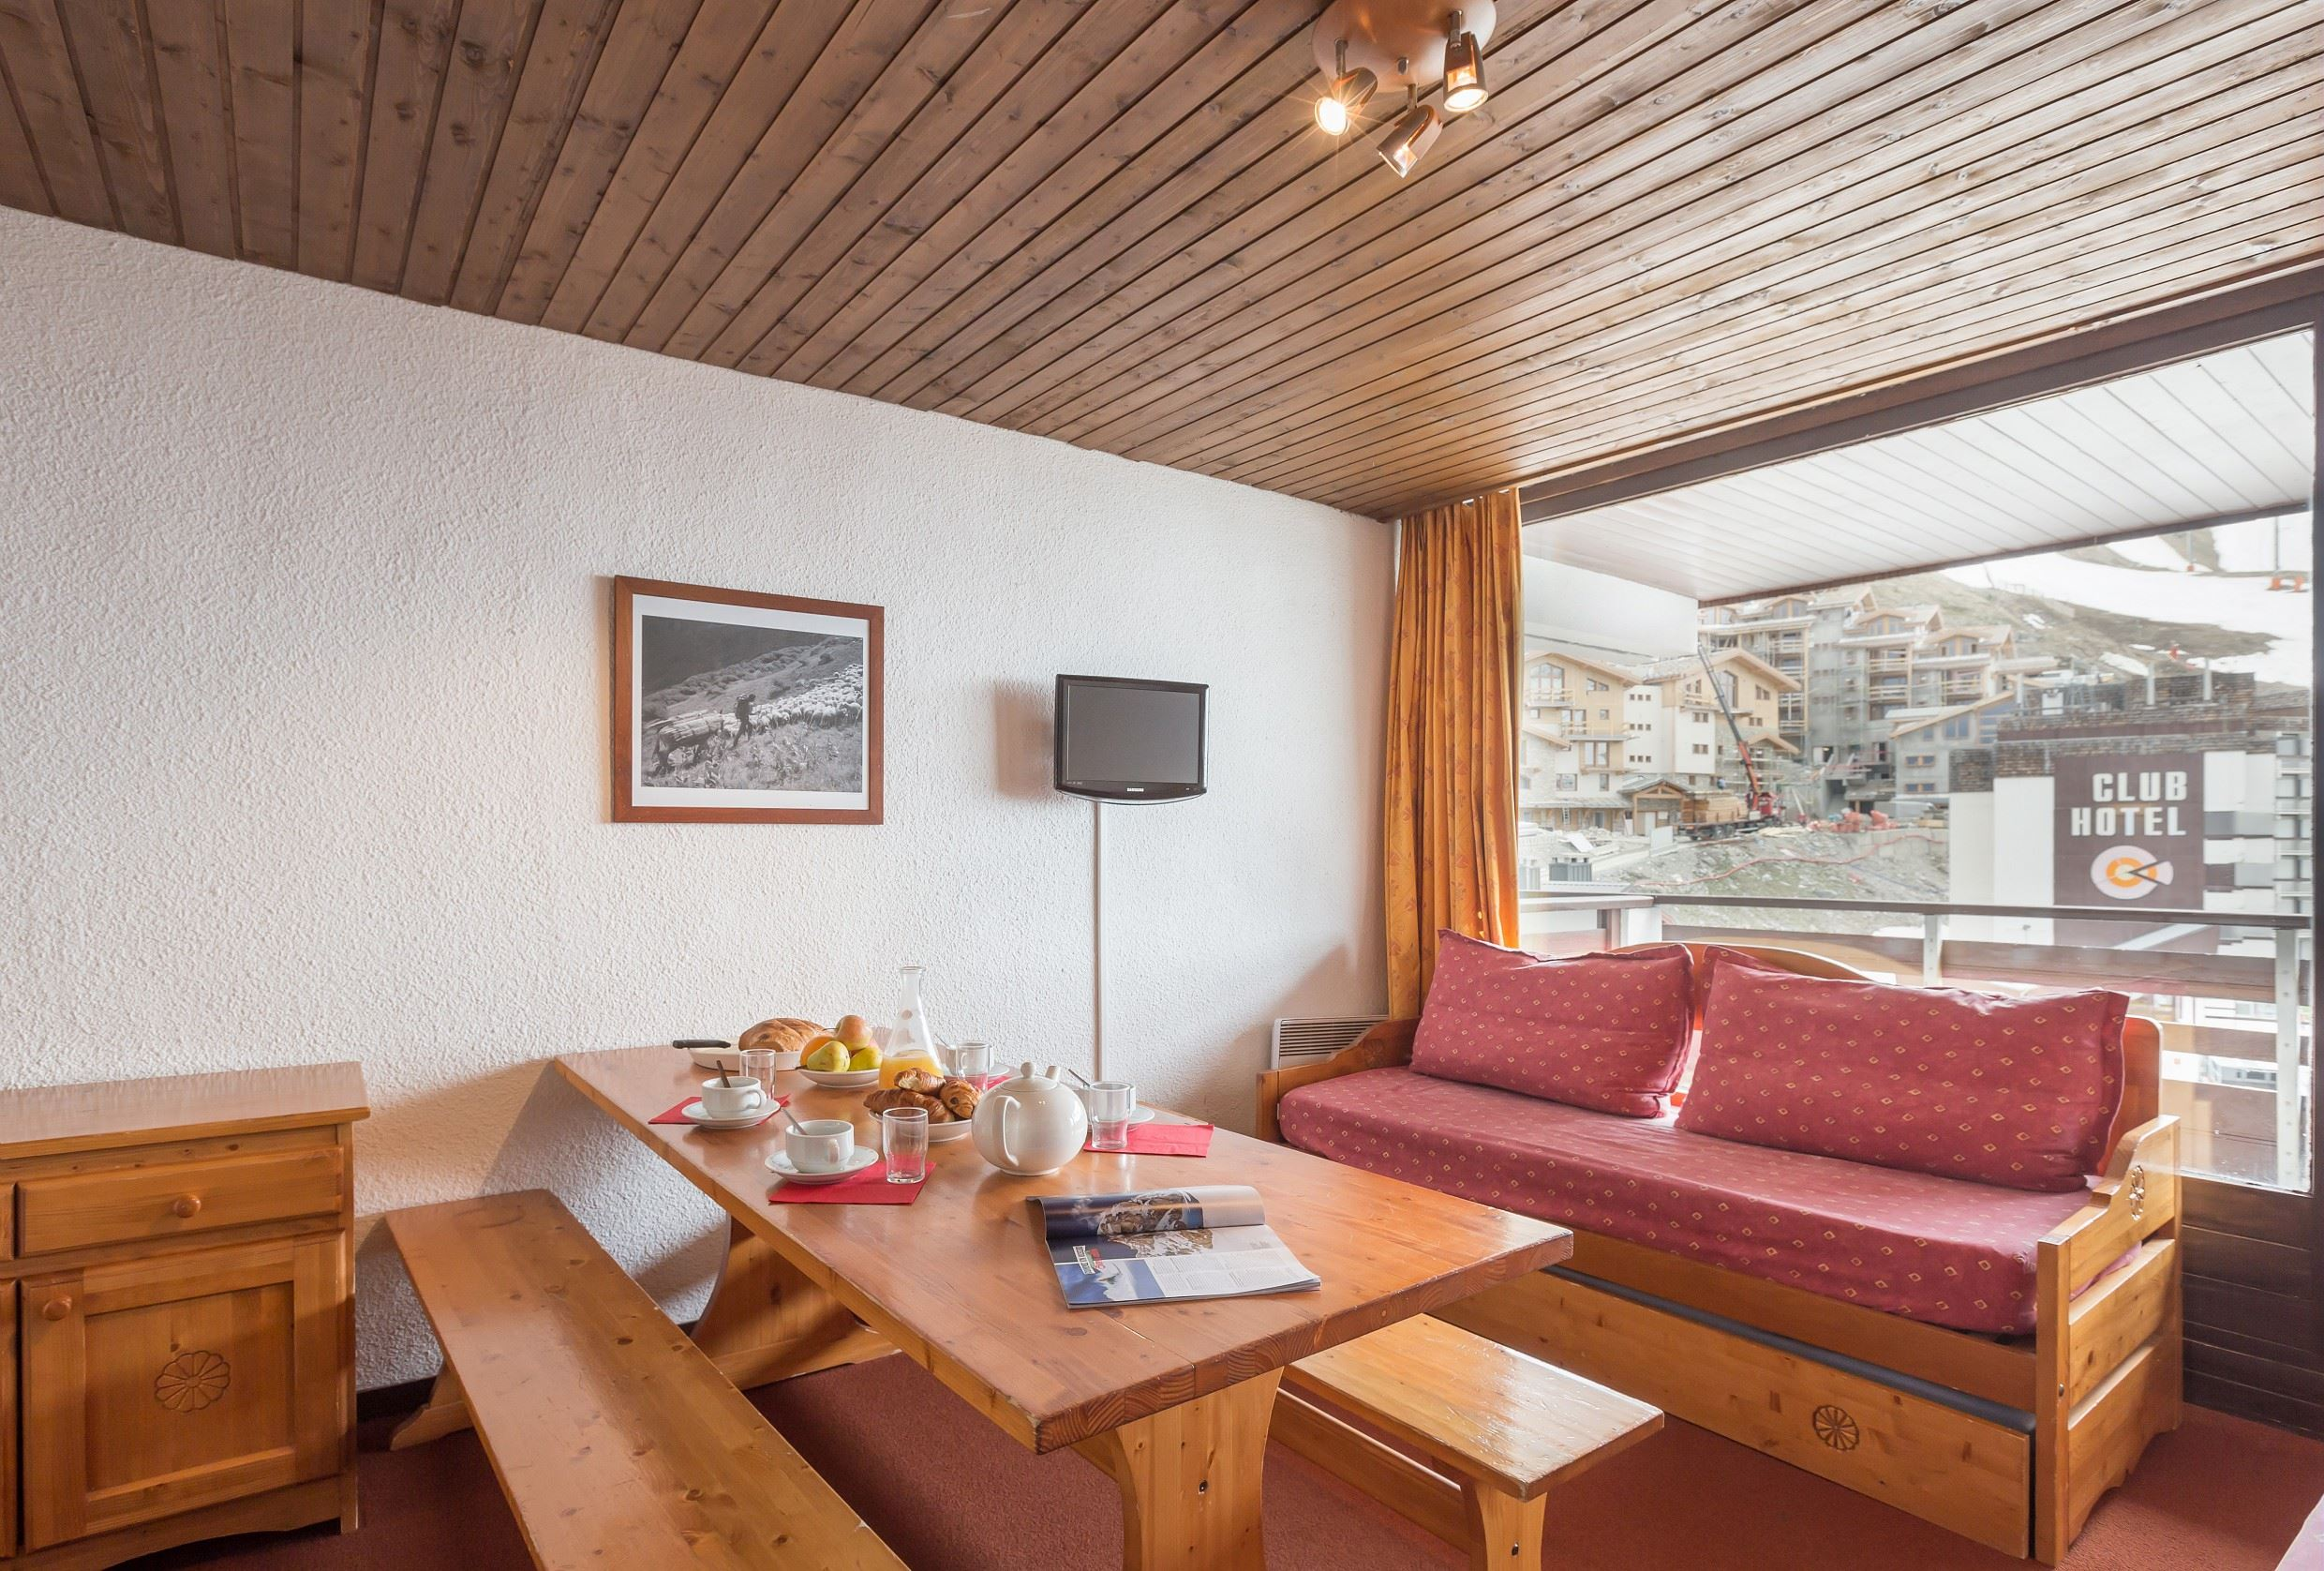 Residence Schuss - Apartment 2 rooms 8 persons with balcony south facing and wiew on the slopes + 1 parking place in the residence